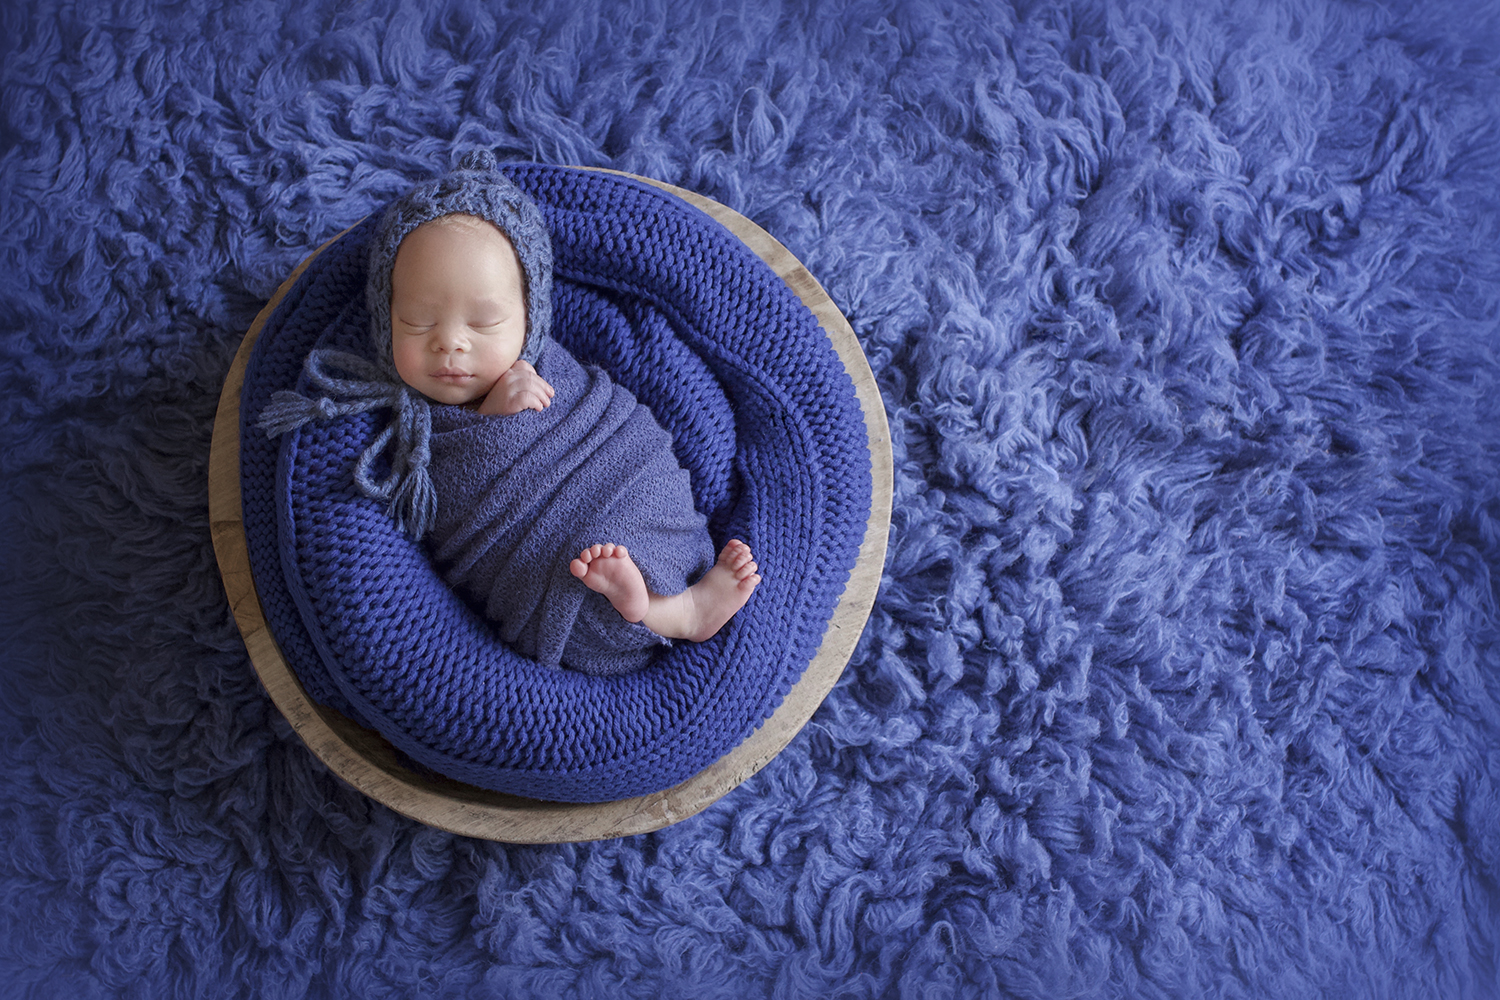 Newborn baby bpy sleeping in round wooden bowl with blue blanket and wrap and bonnet on blue fur